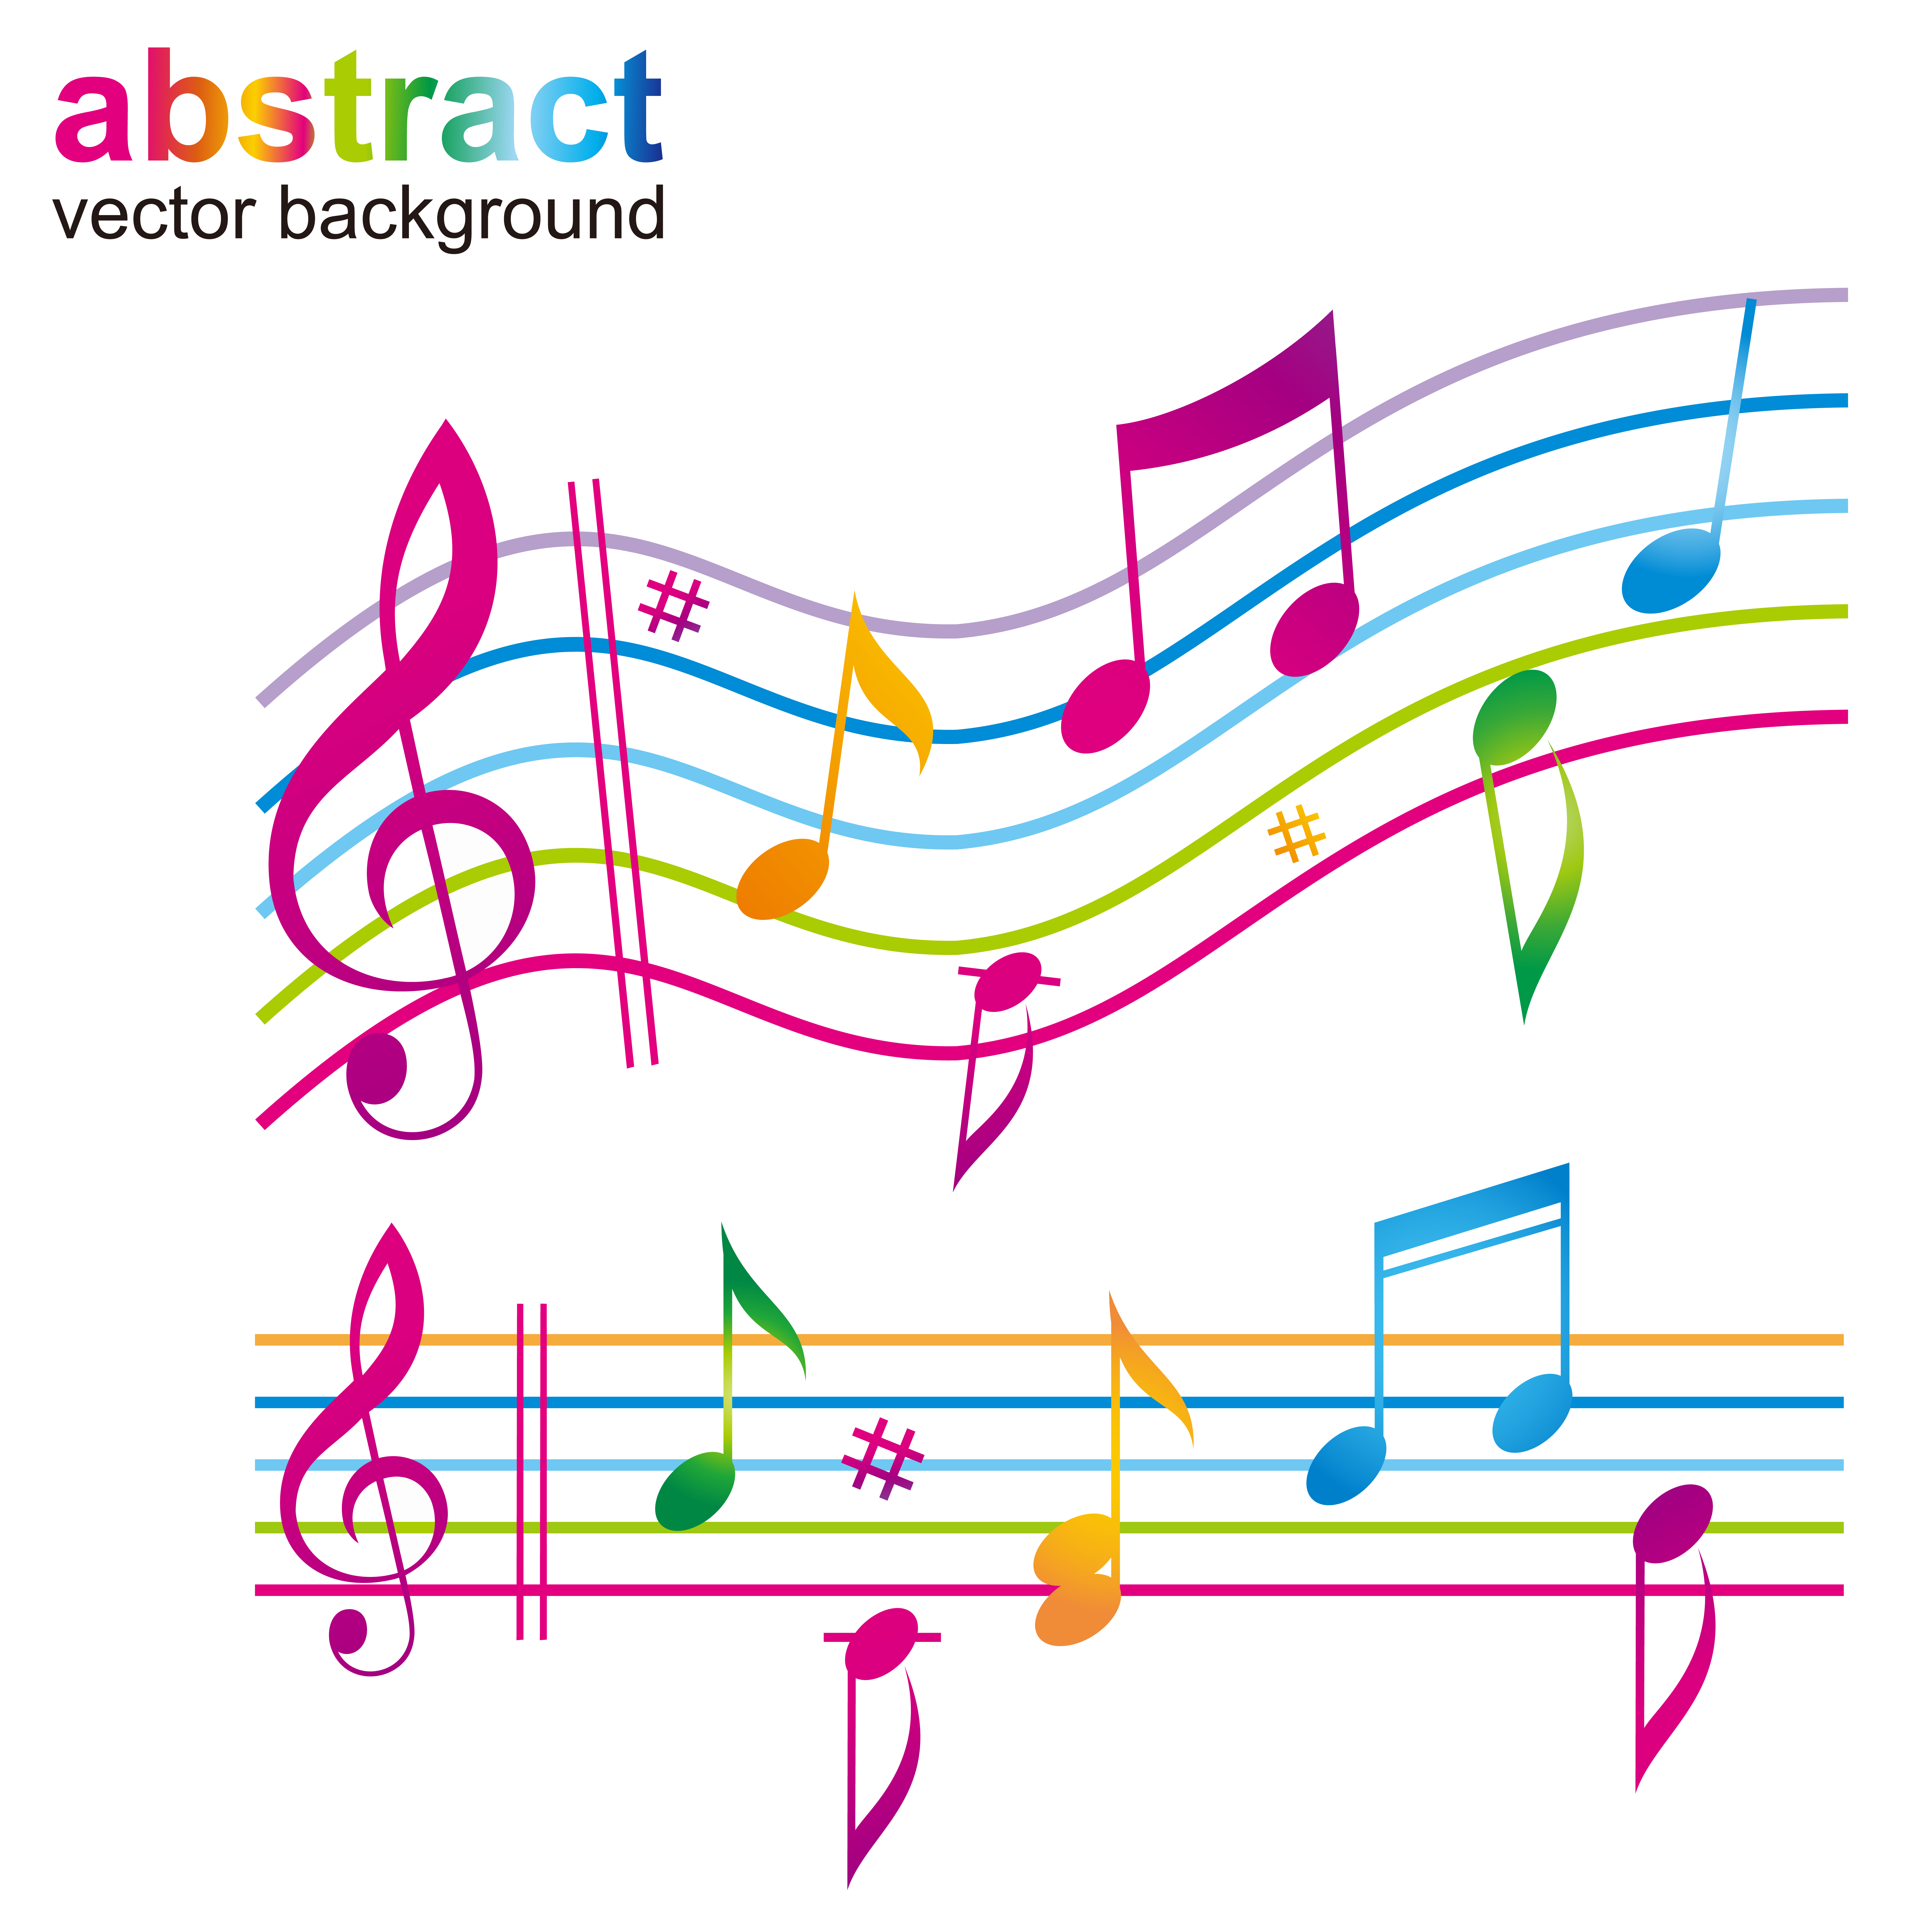 Staff music notes png. Musical note color sheet